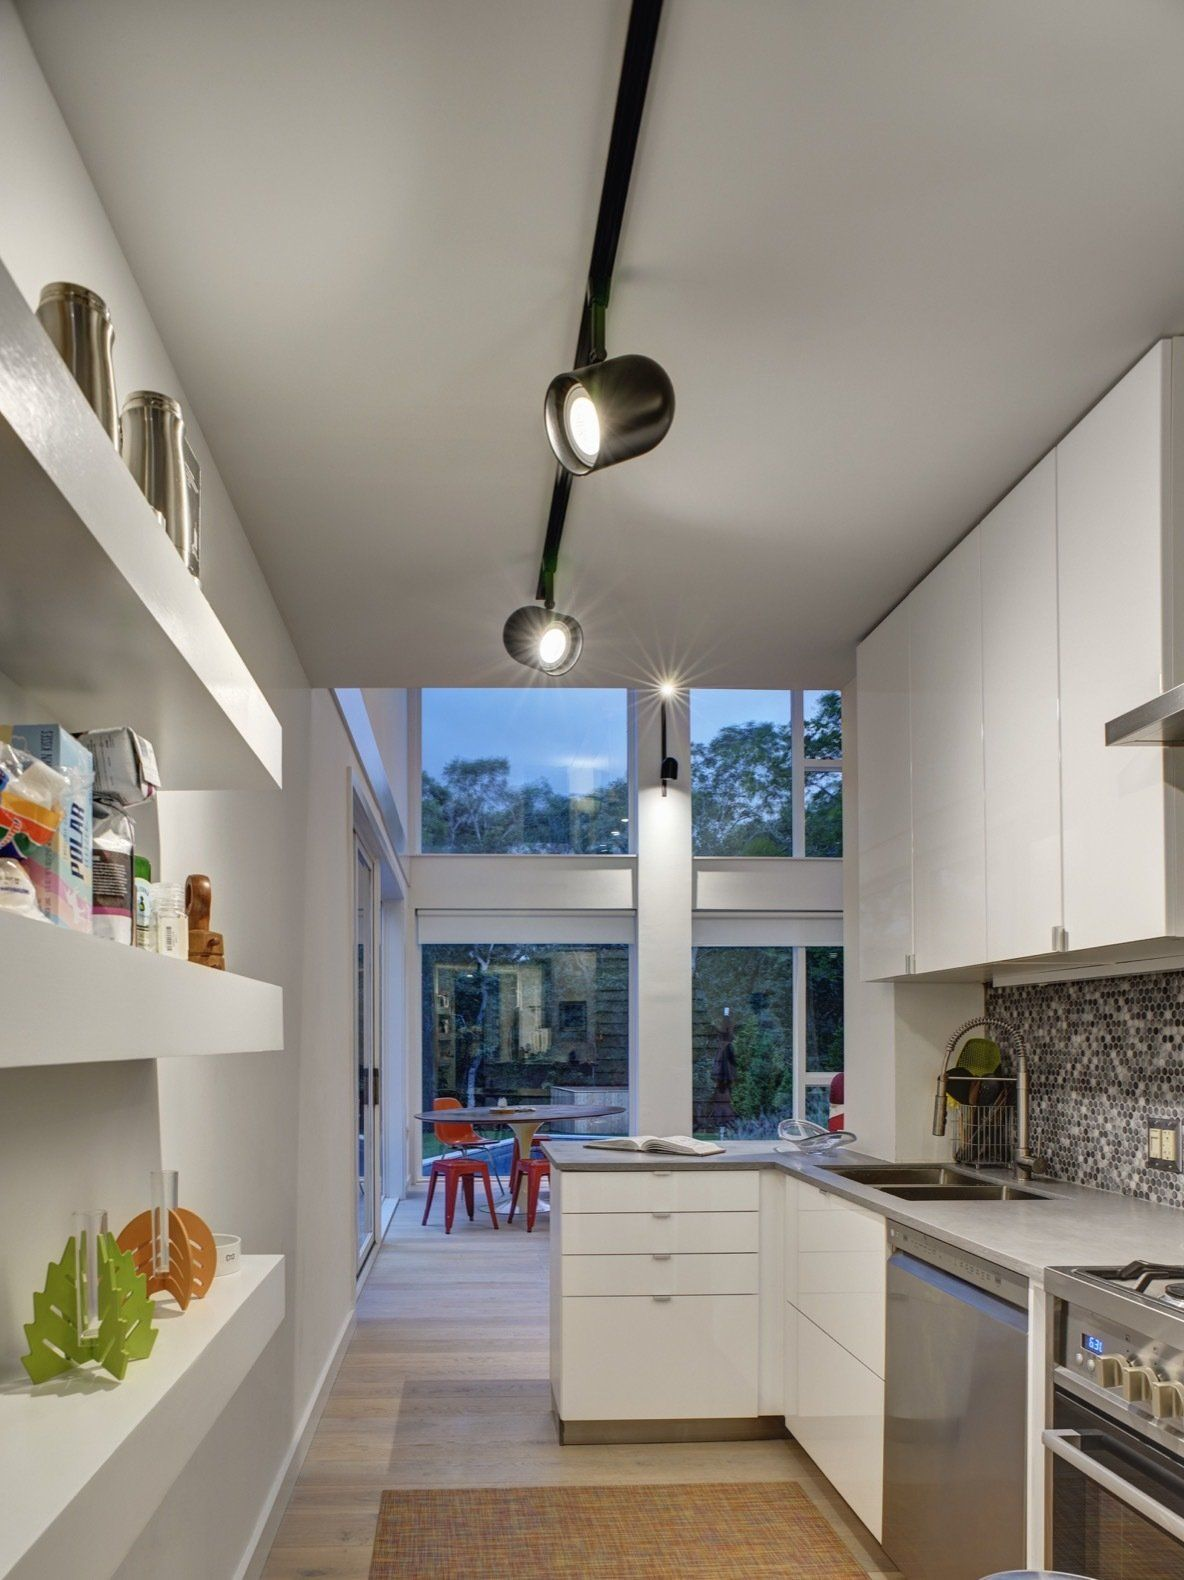 The kitchen opens onto the main living area but acts as a separate space